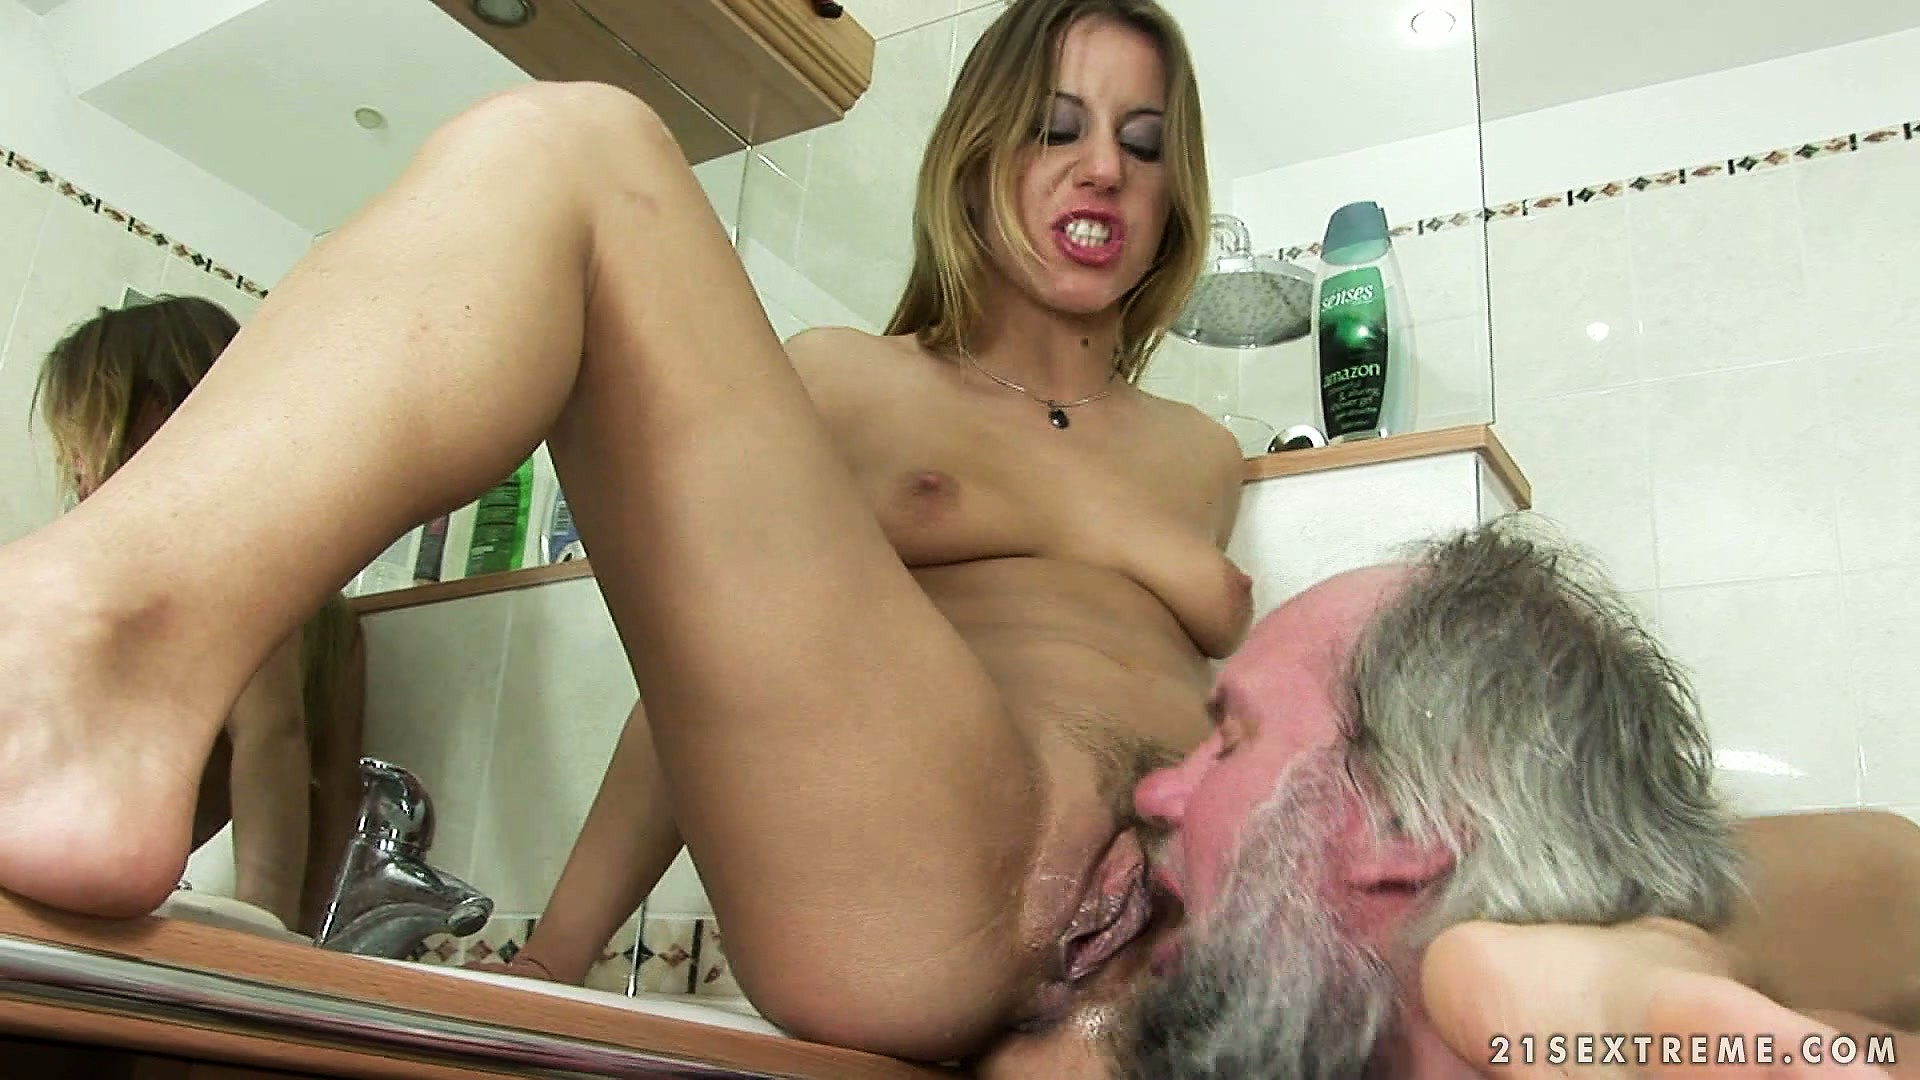 Porn Tube of Sitting On The Toilet Sink, The Blonde Has Him Drilling Her Peach Hard And Deep